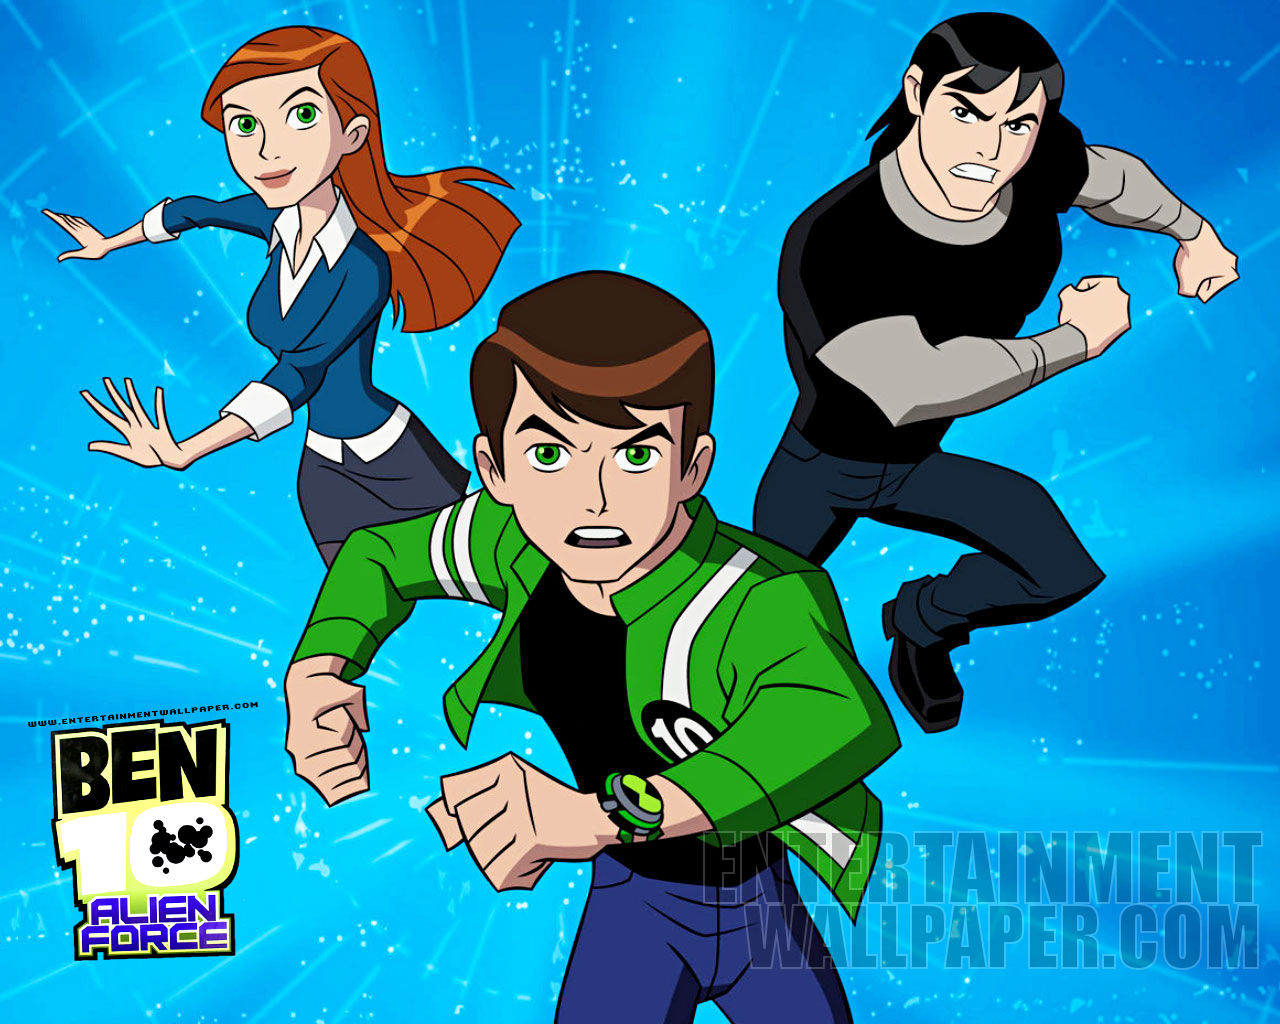 ben10 alien force